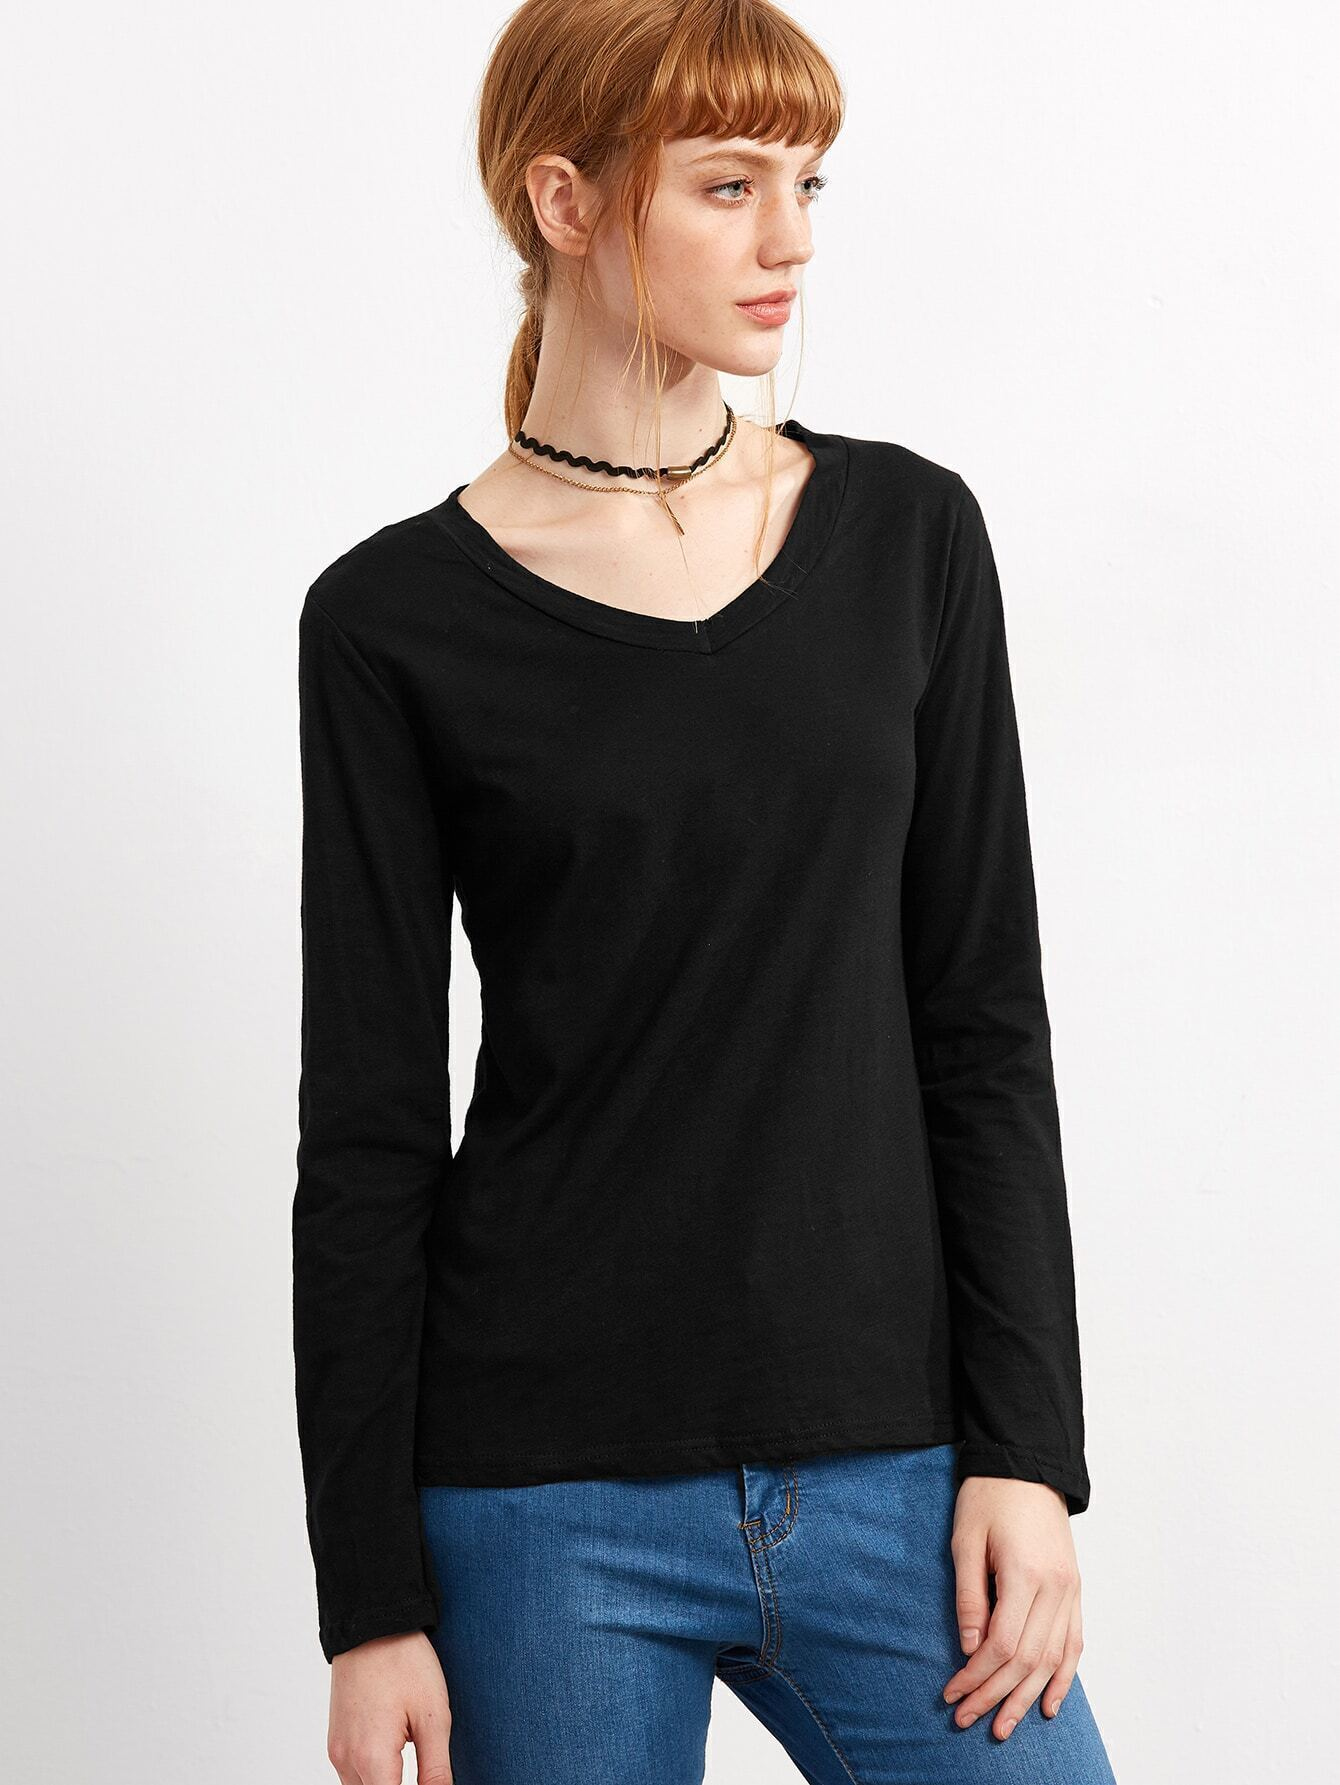 Buy the latest v neck long sleeve black t shirt cheap shop fashion style with free shipping, and check out our daily updated new arrival v neck long sleeve black t shirt at xajk8note.ml